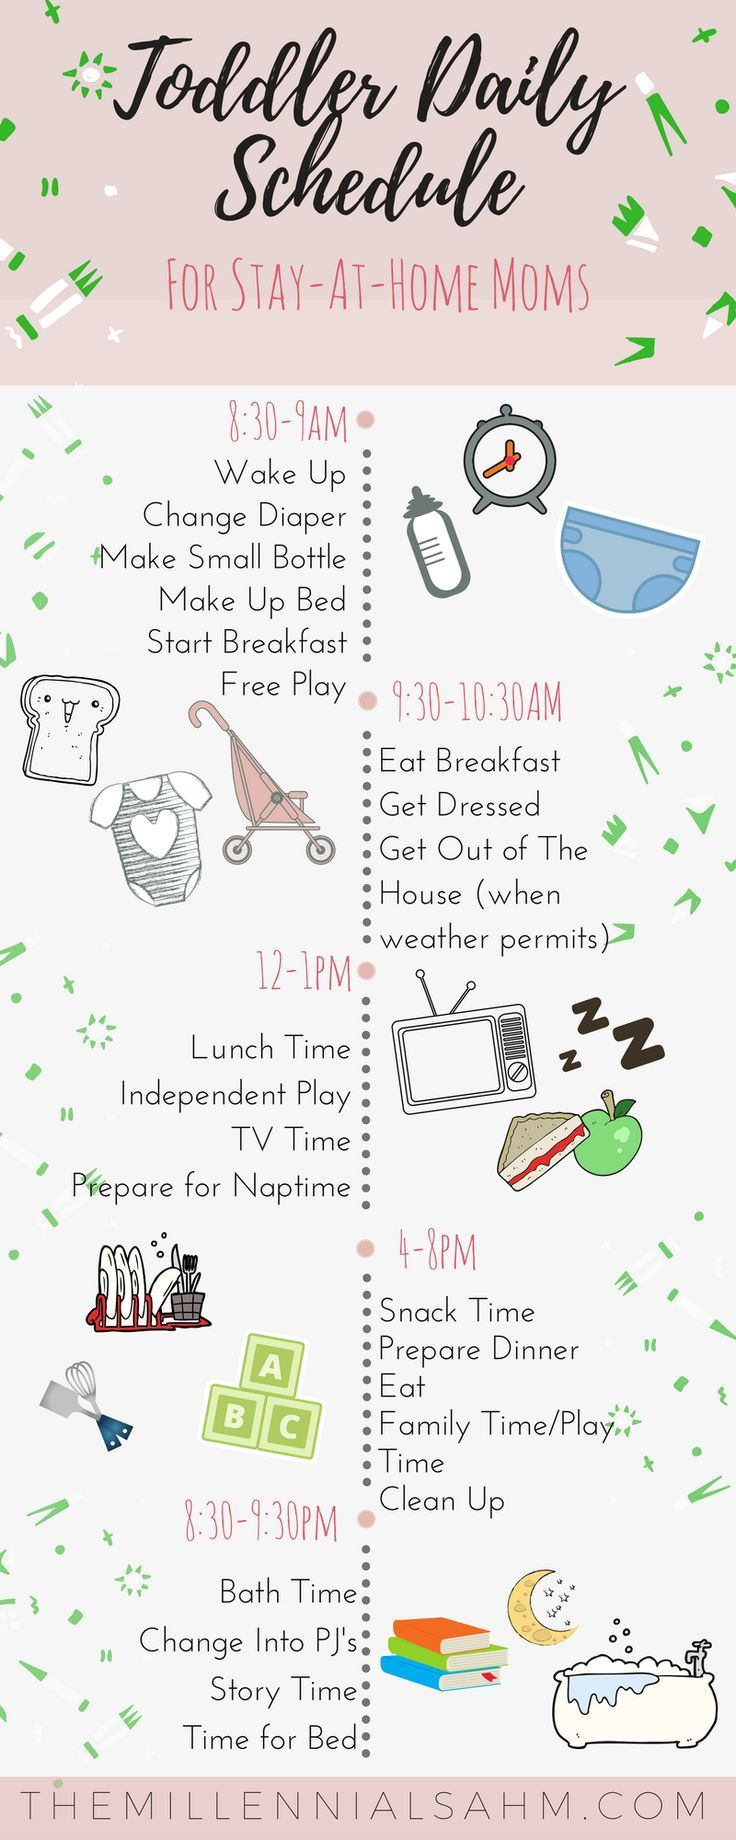 Sample Toddler Schedule For StayAtHome Moms  The Millennial